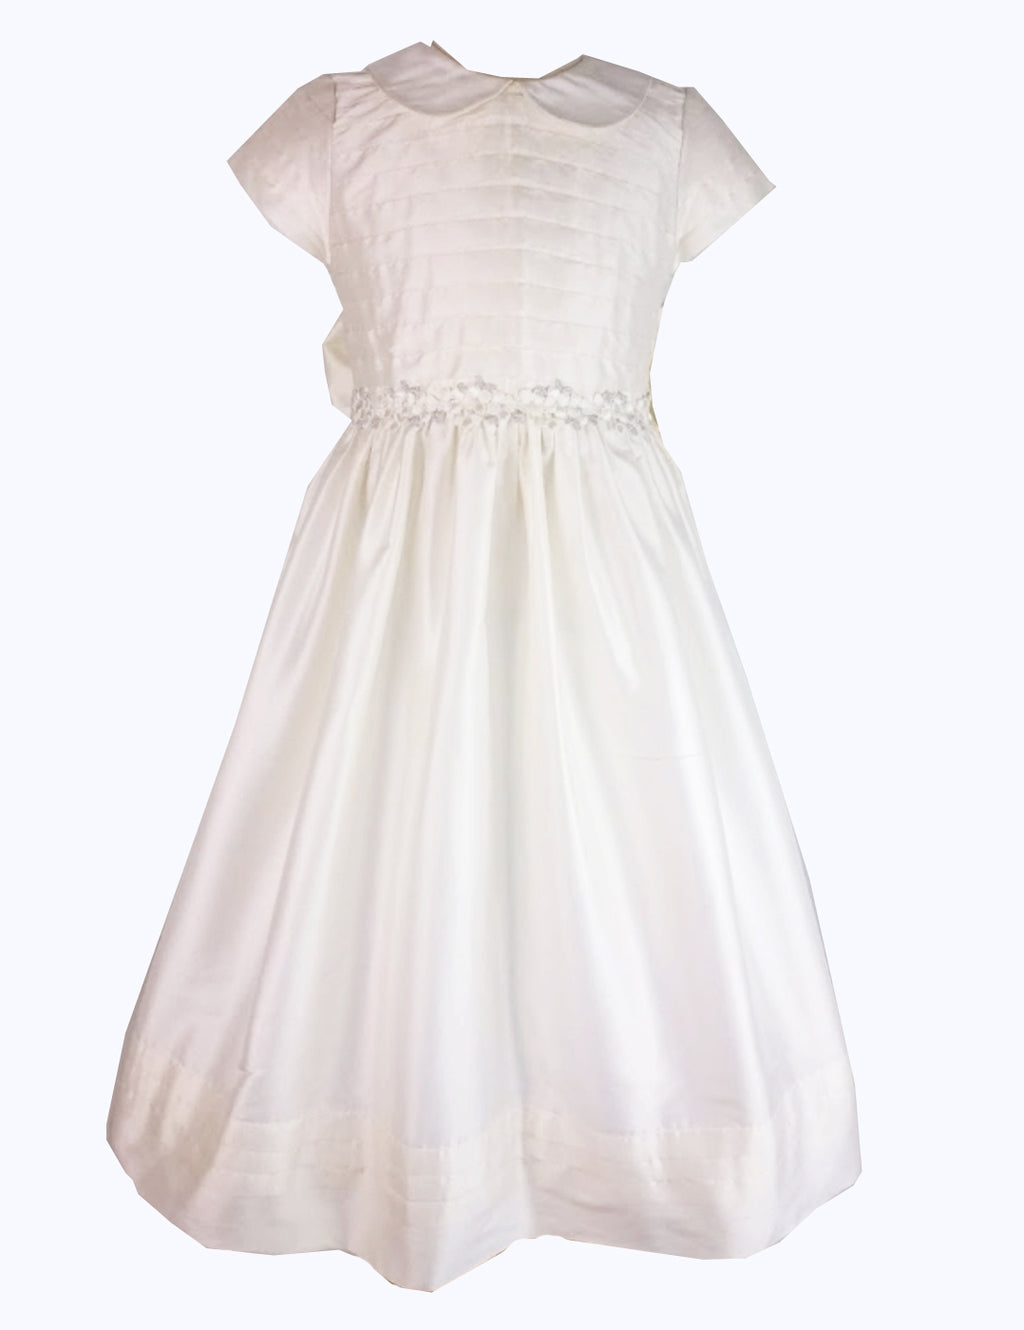 Silk First Communion Girl's dress - Little Threads Inc. Children's Clothing